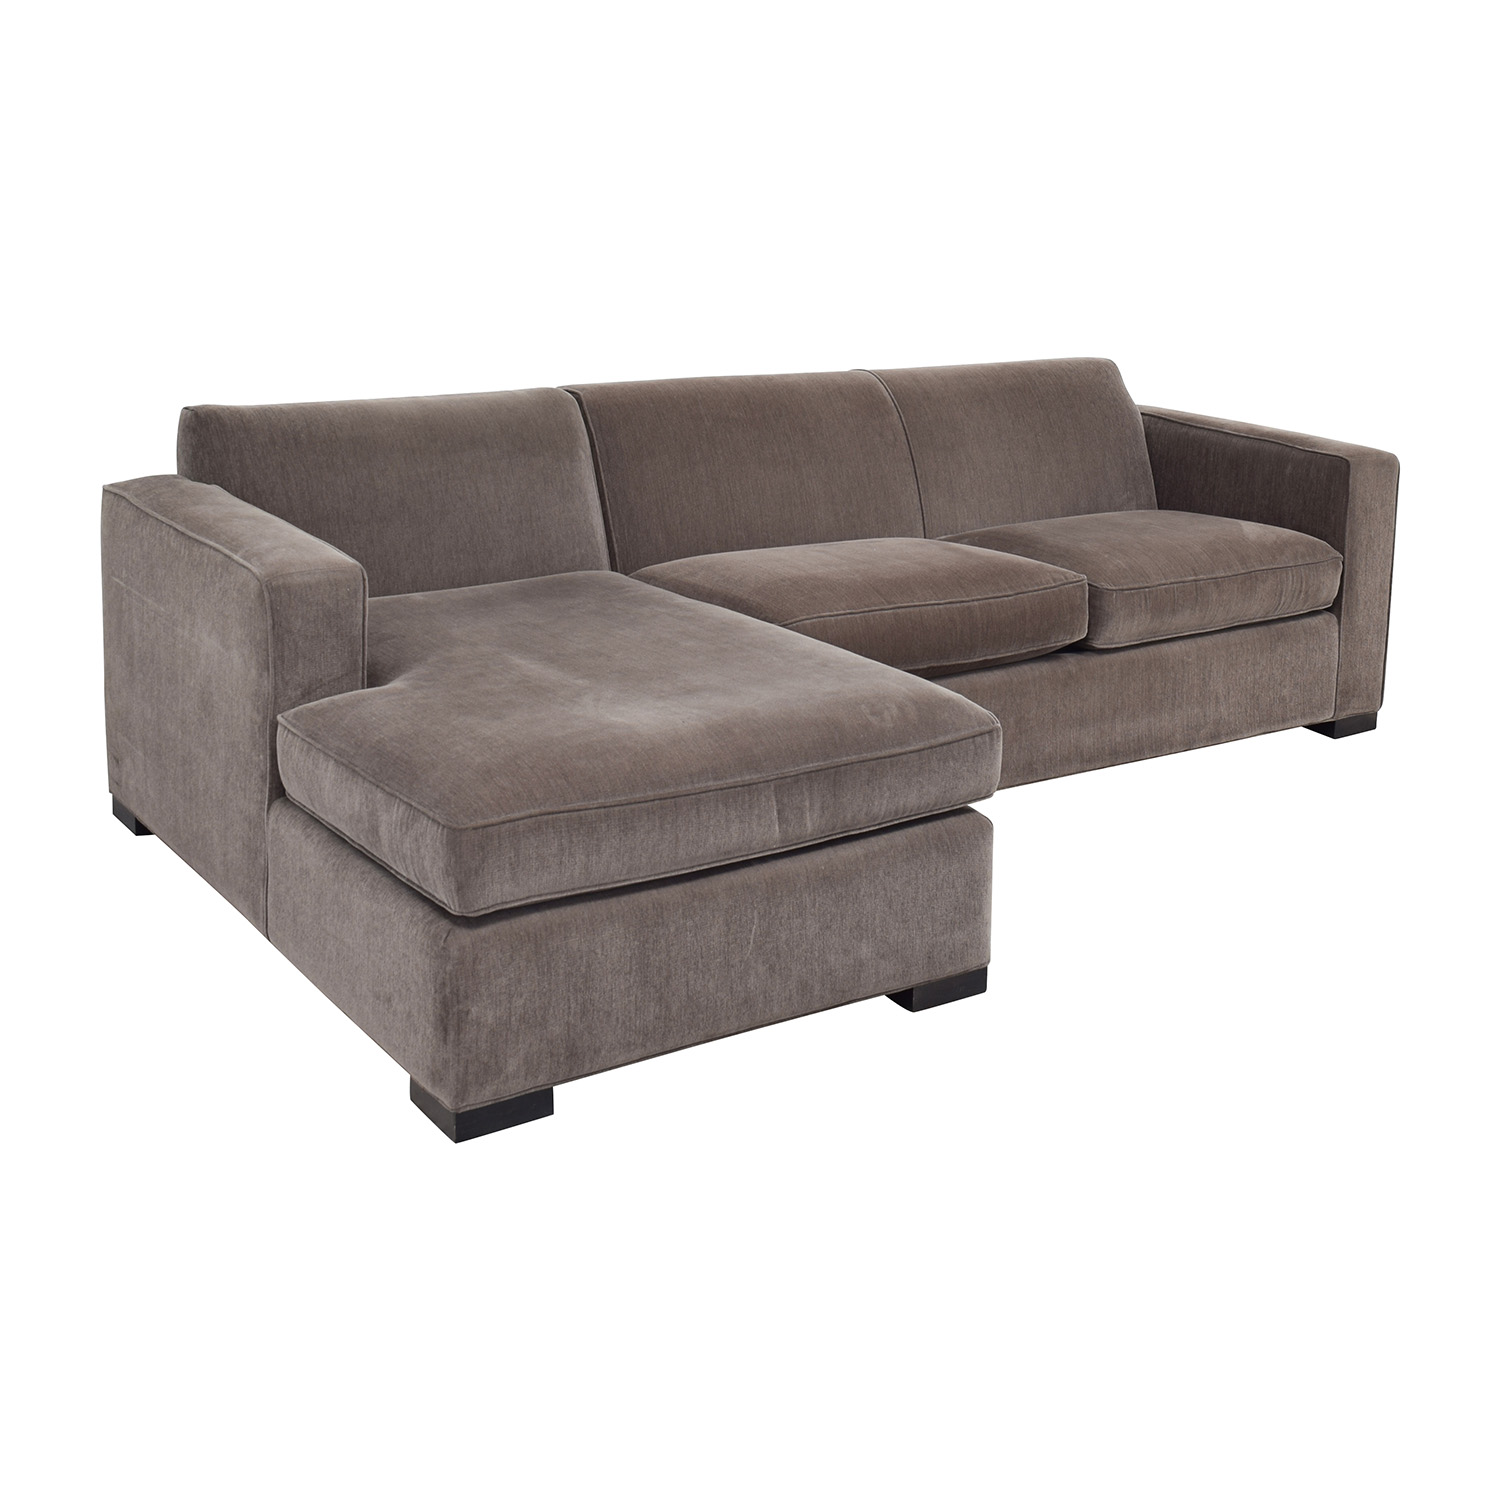 58% OFF Room & Board Room & Board Ian Grey Sectional Sofas